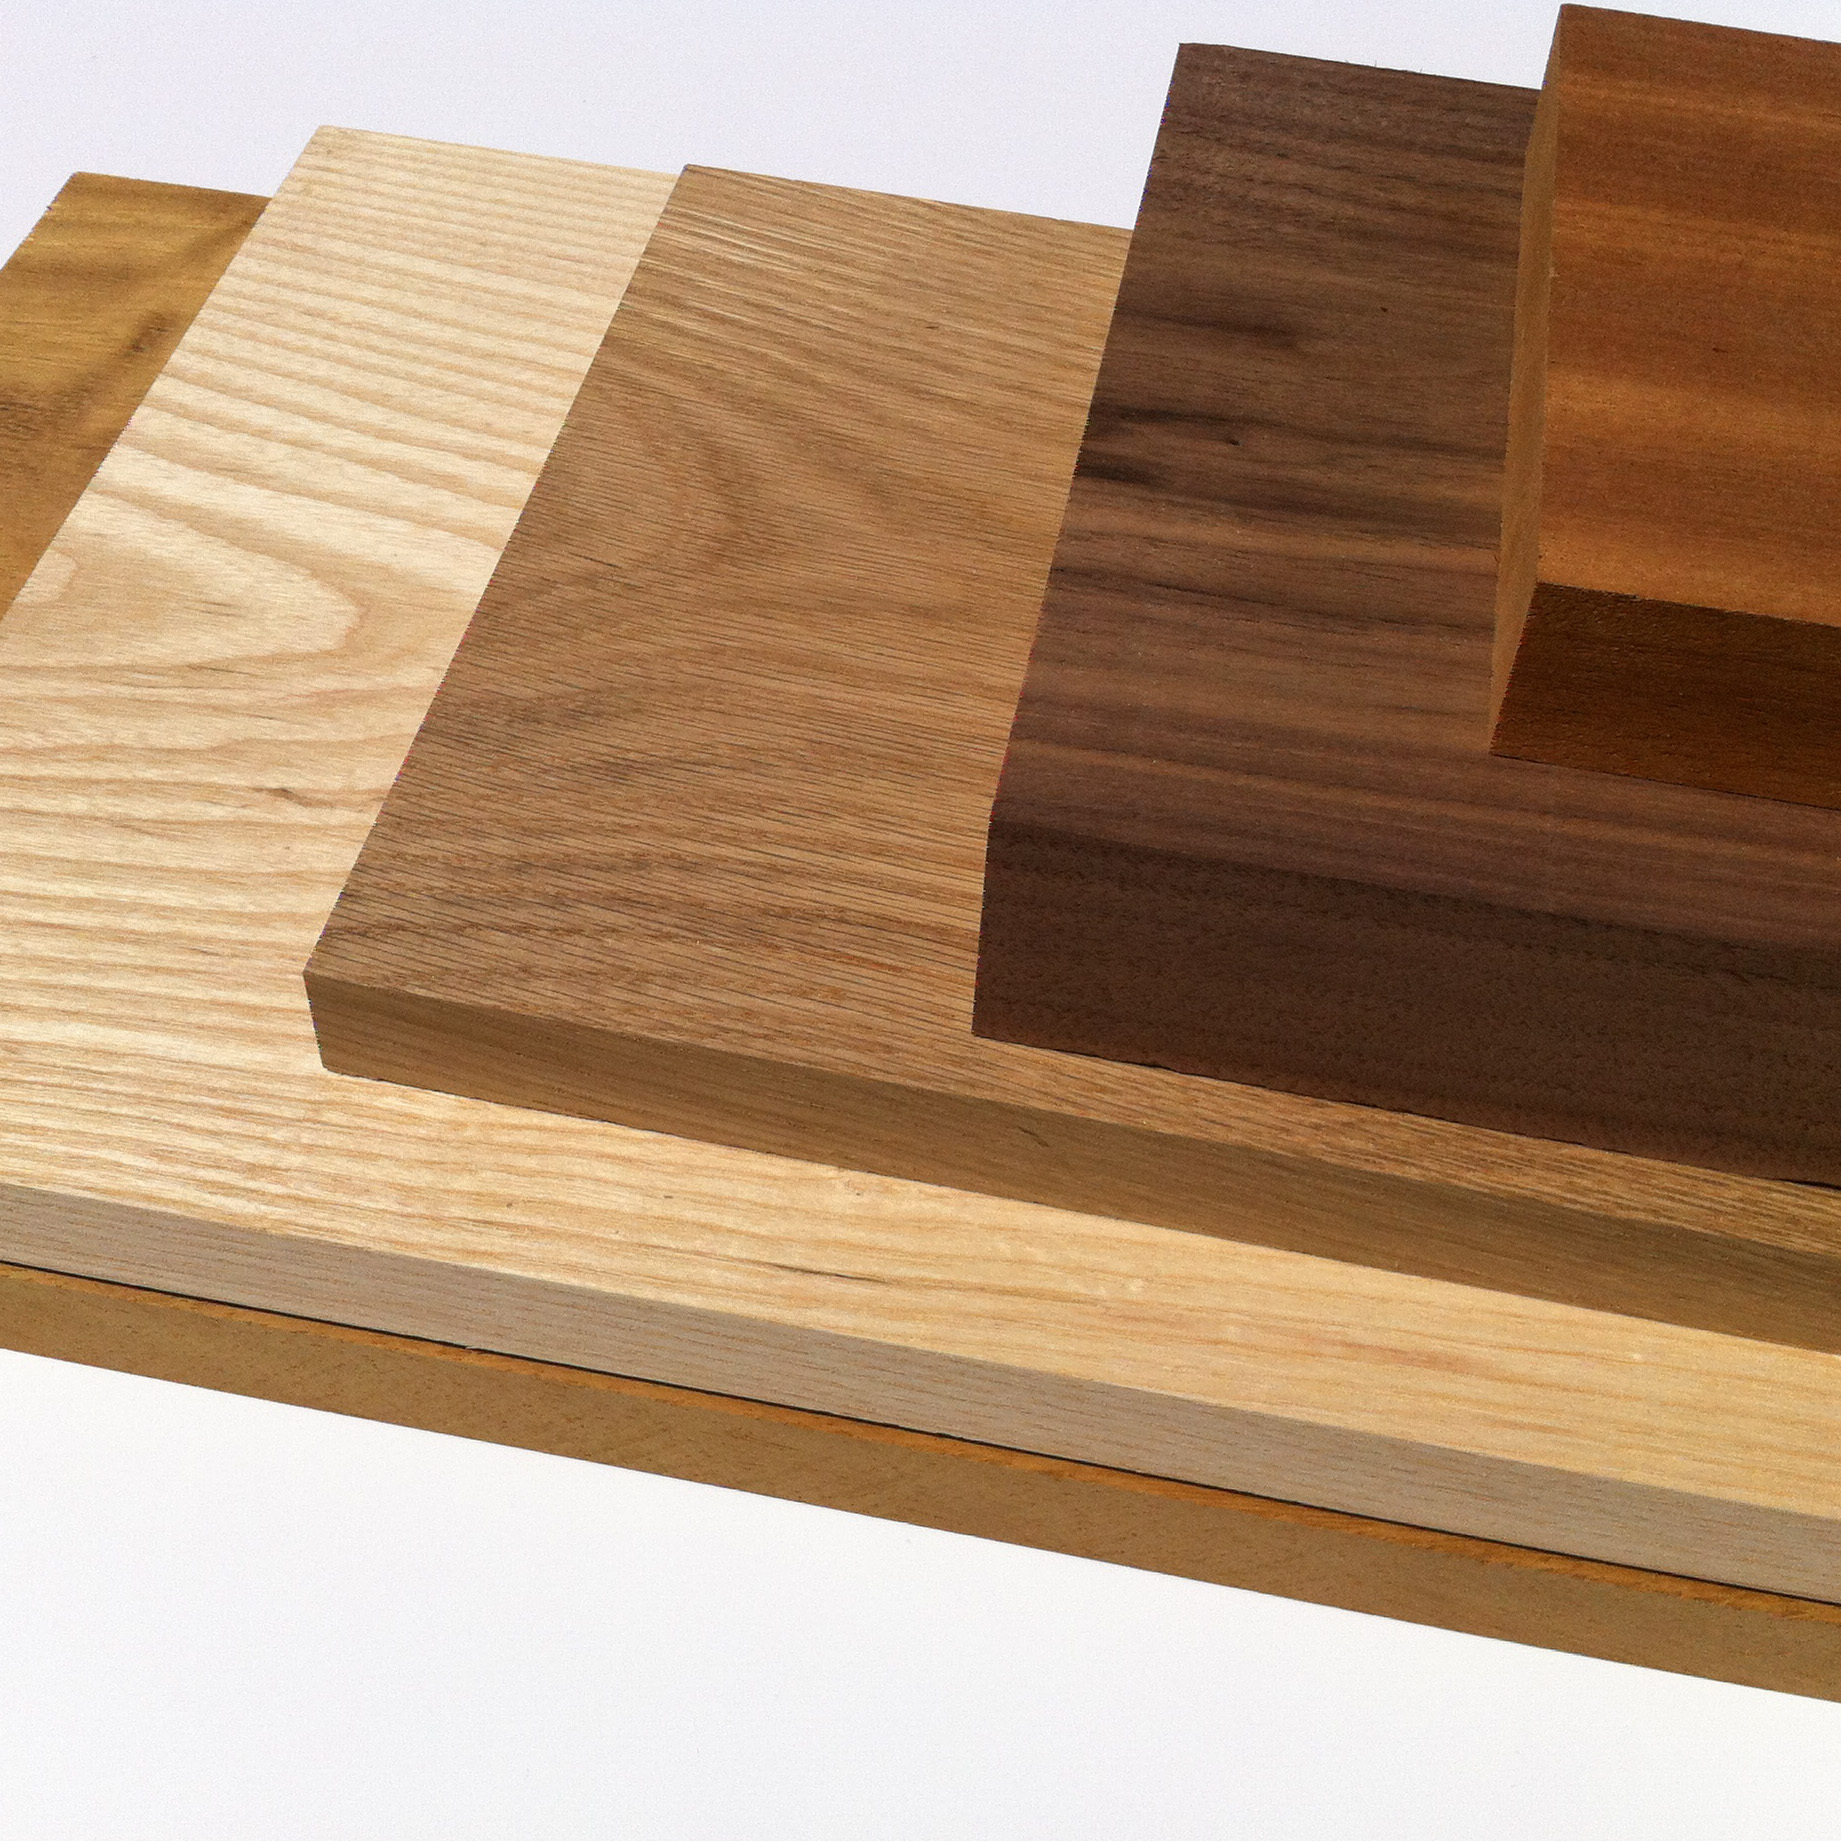 Types of hardwood suppliers – tips and tricks